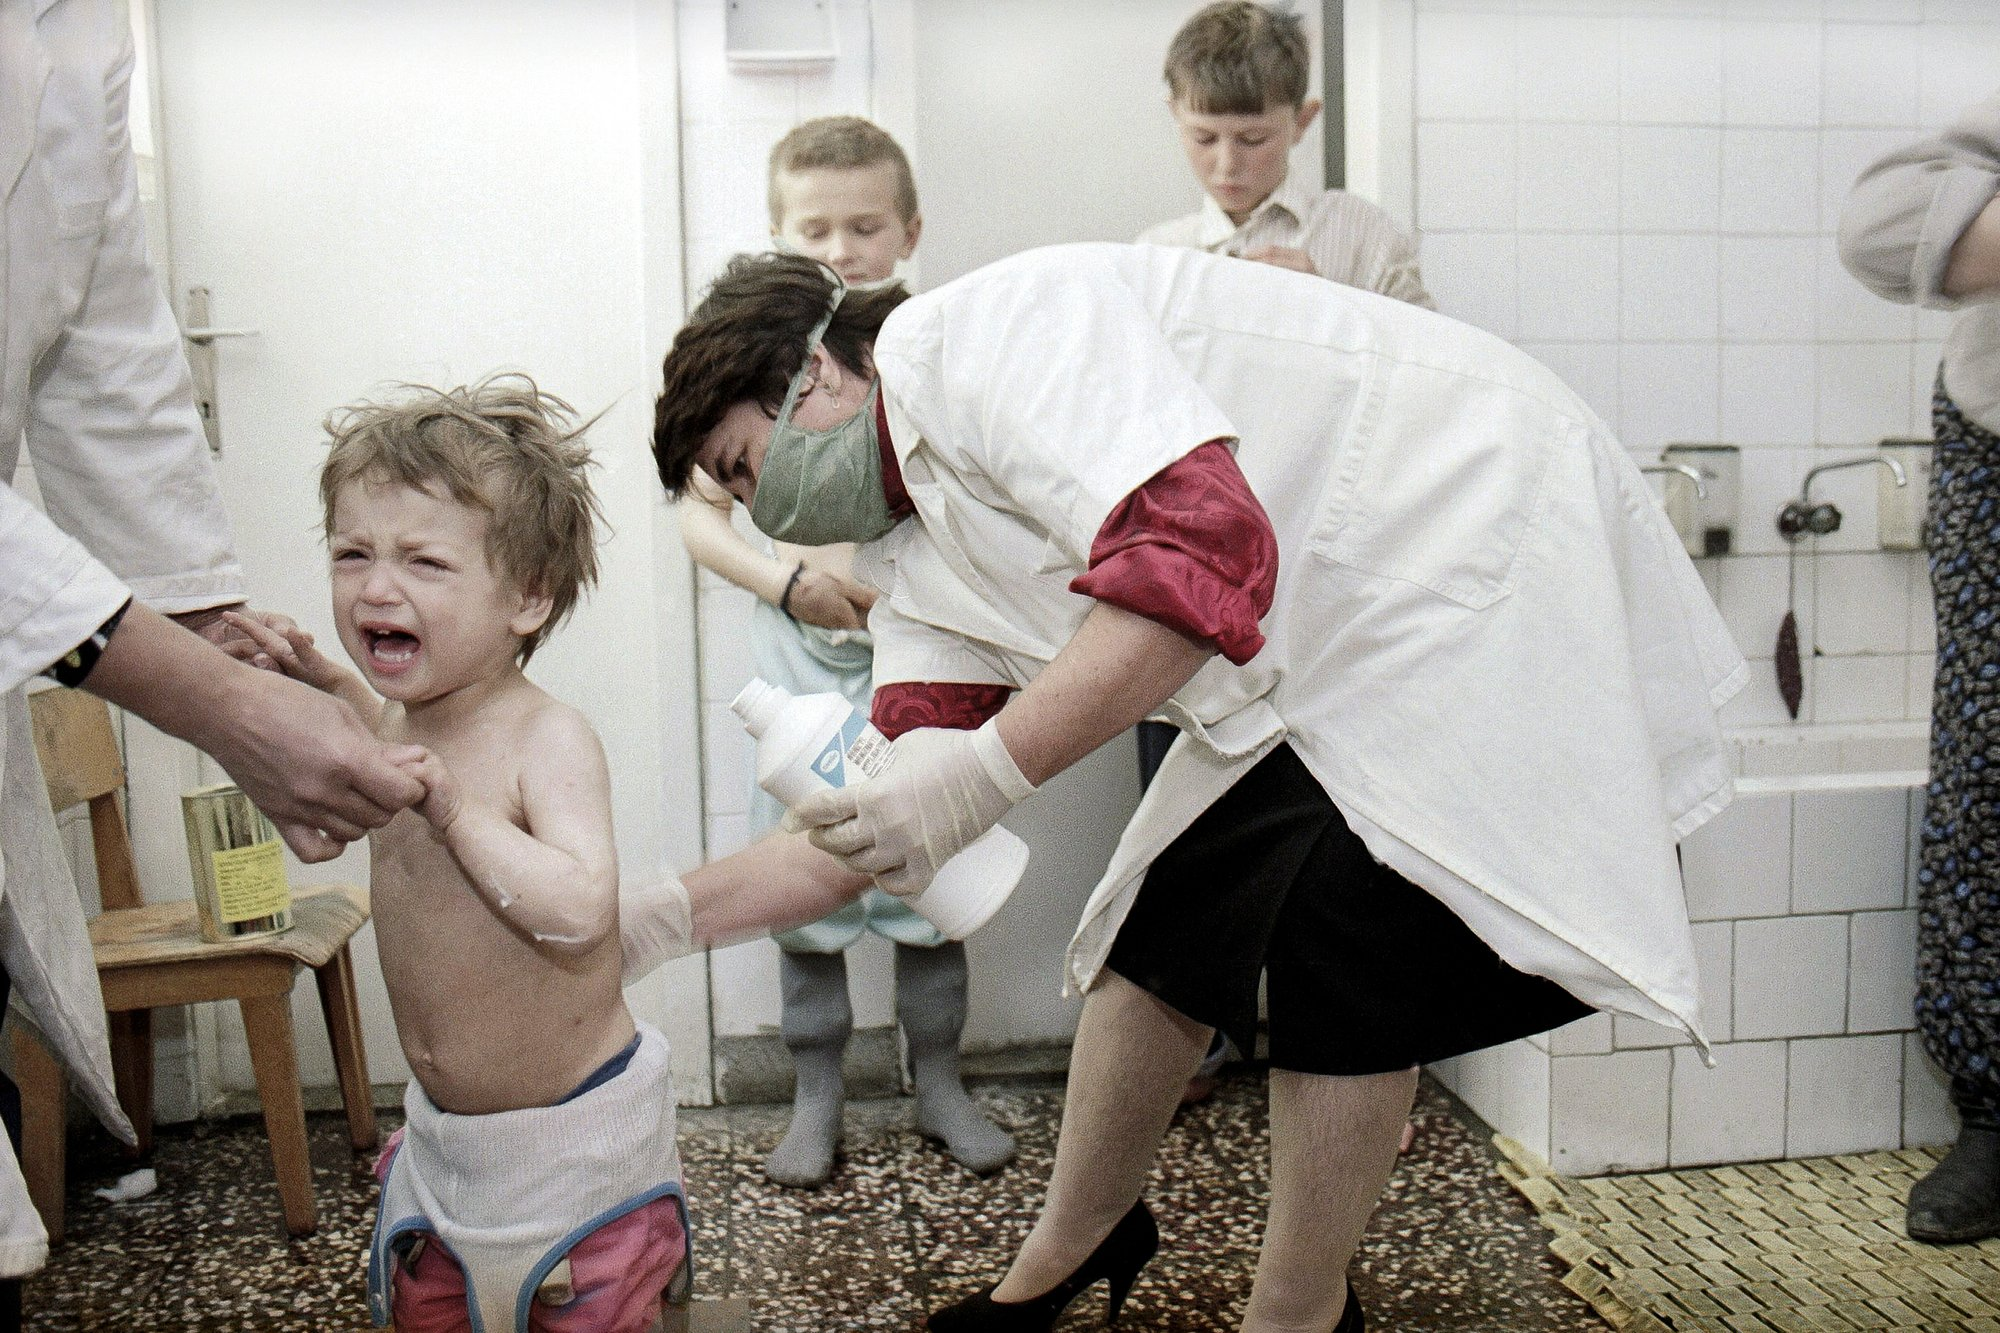 FILE- In this March 23, 1993, file picture a nurse treats a child refugee from Srebrenica with ointment against measles at the refugee camp in Lukavac, Bosnia.  Survivors of the genocide in the eastern Bosnian town of Srebrenica, mainly women, will on Saturday July 11, 2020, commemorate the 25th anniversary of the slaughter of their fathers and brothers, husbands and sons.  At least 8,000 mostly Muslim men and boys were chased through woods in and around Srebrenica by Serb troops in what is considered the worst carnage of civilians in Europe since World War II. The slaughter was also the only atrocity of the brutal war that has been confirmed an act of genocide. (AP Photo/Michel Euler, File)